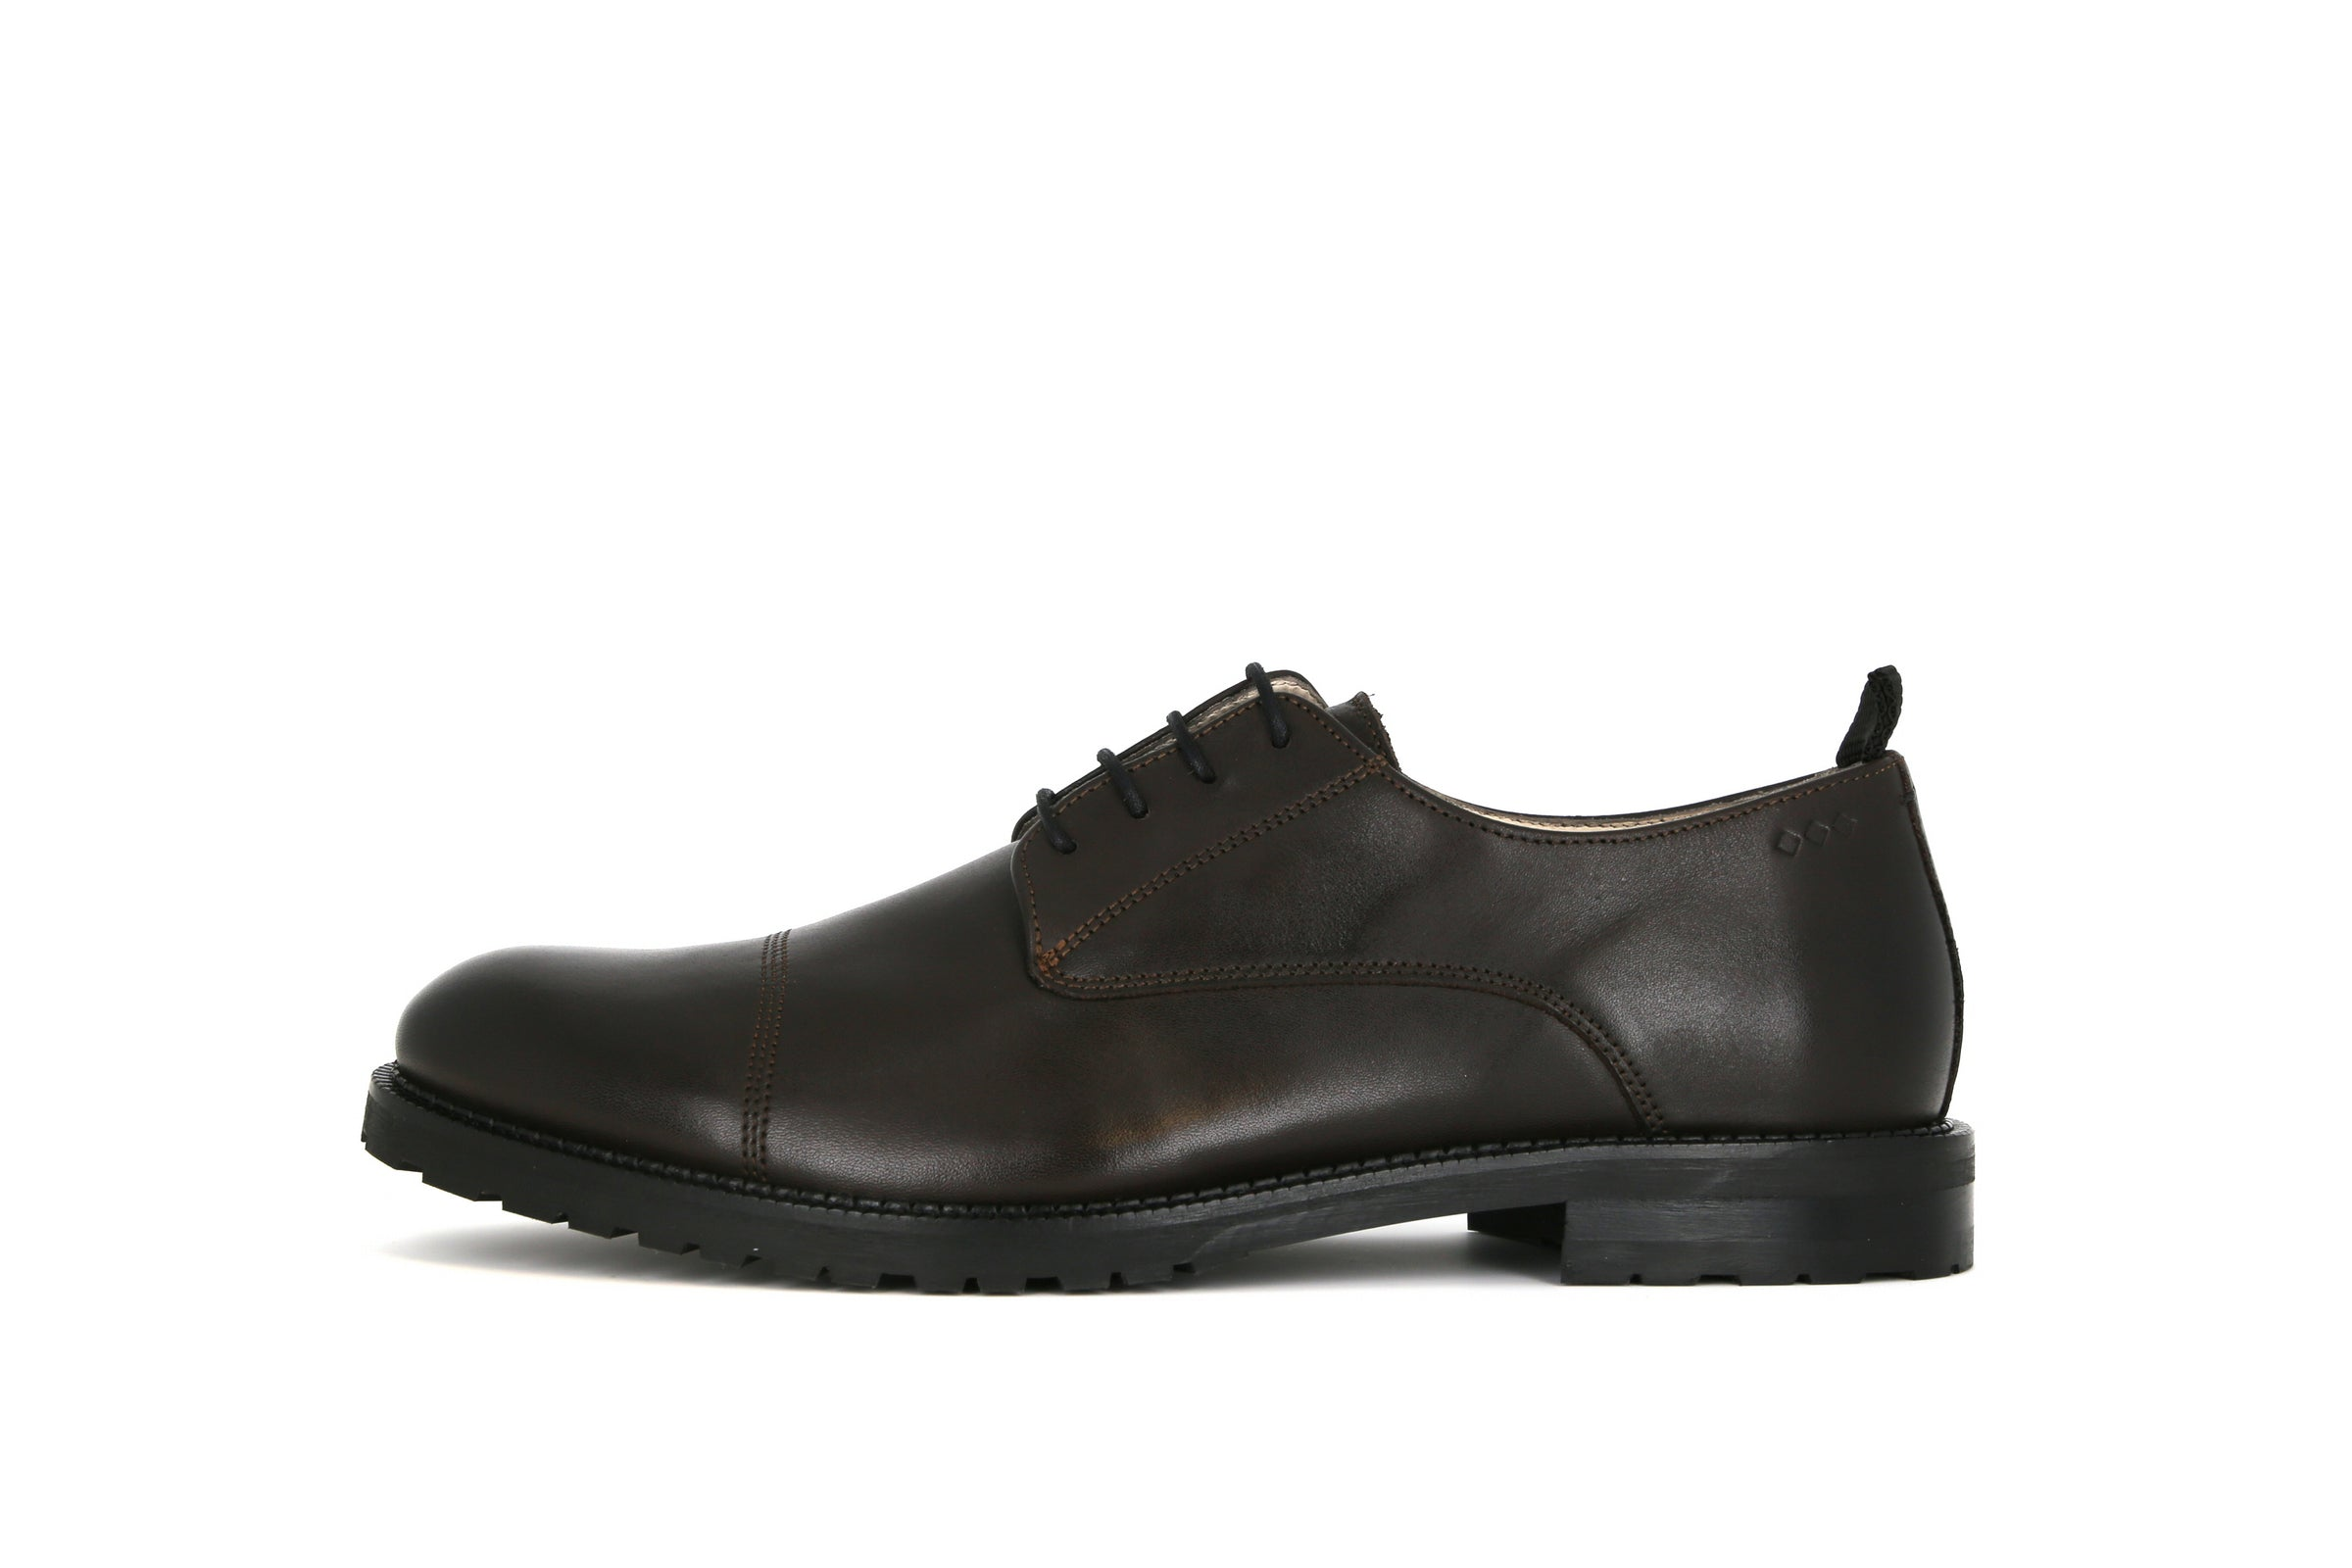 Alias City Hiker Derby Shoe